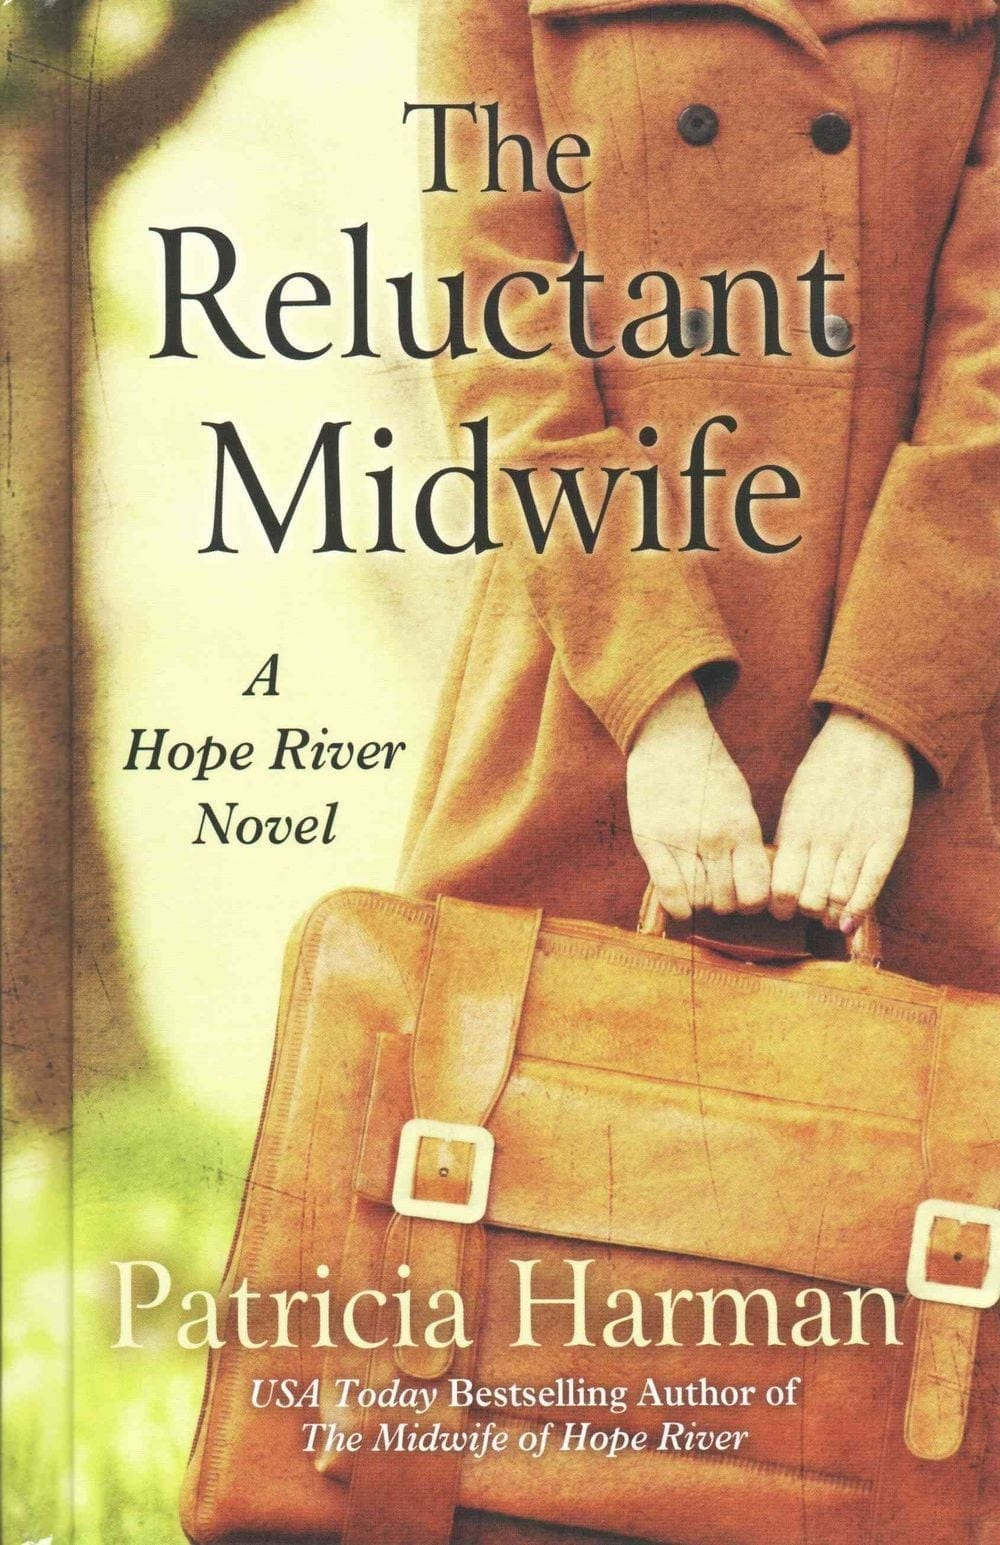 The Reluctant Midwife by Patricia Harman